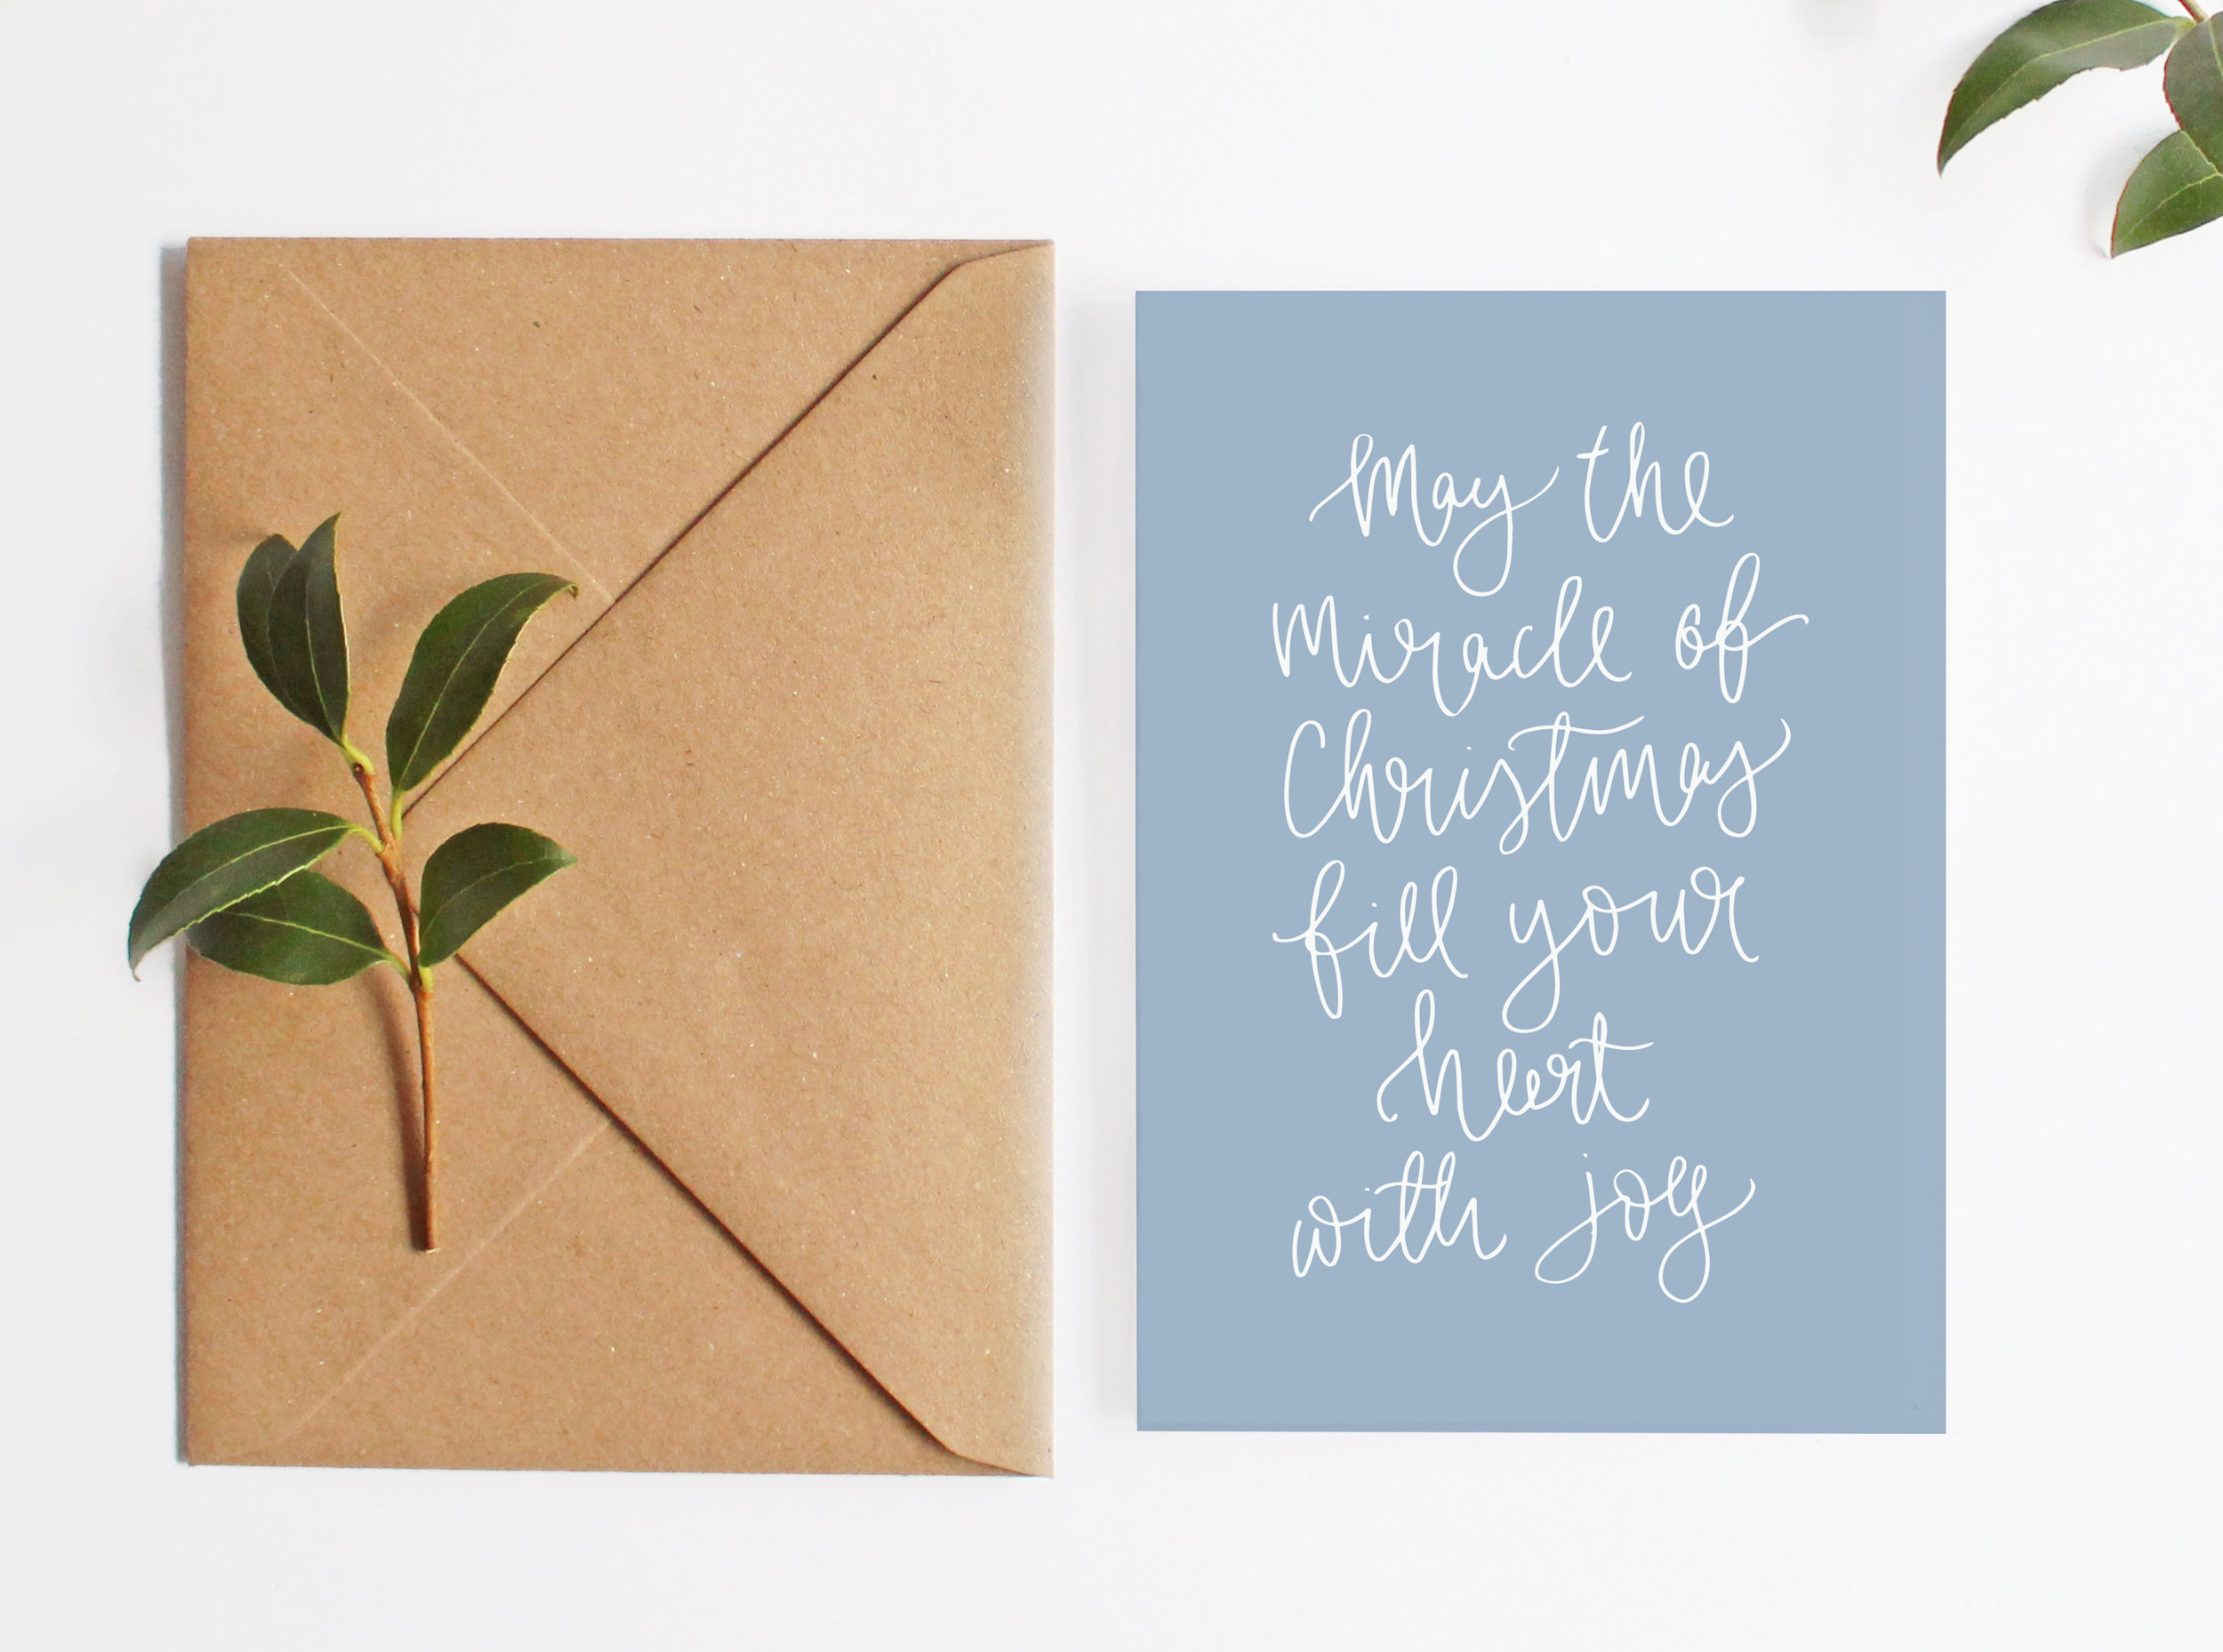 Modern Calligraphy Christmas Cards Creative Feel Modern Stationery Gifts Brush Lettering Workshops And Creative Kits Made In Brighton